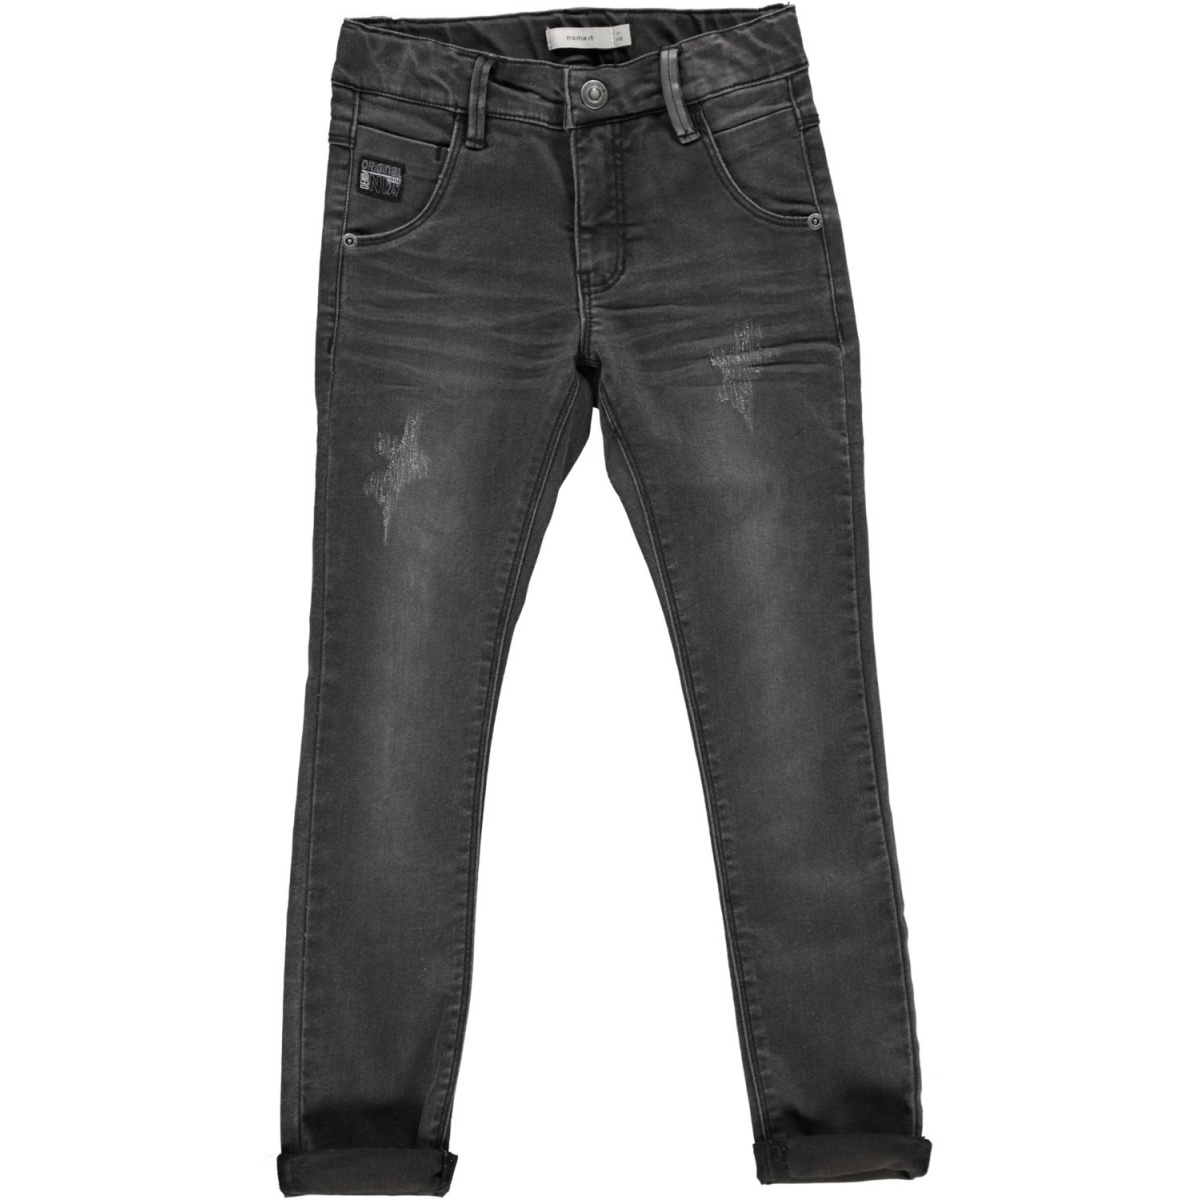 Tom Tailoe Jean Garçon Gris Name It- Ccv Mode